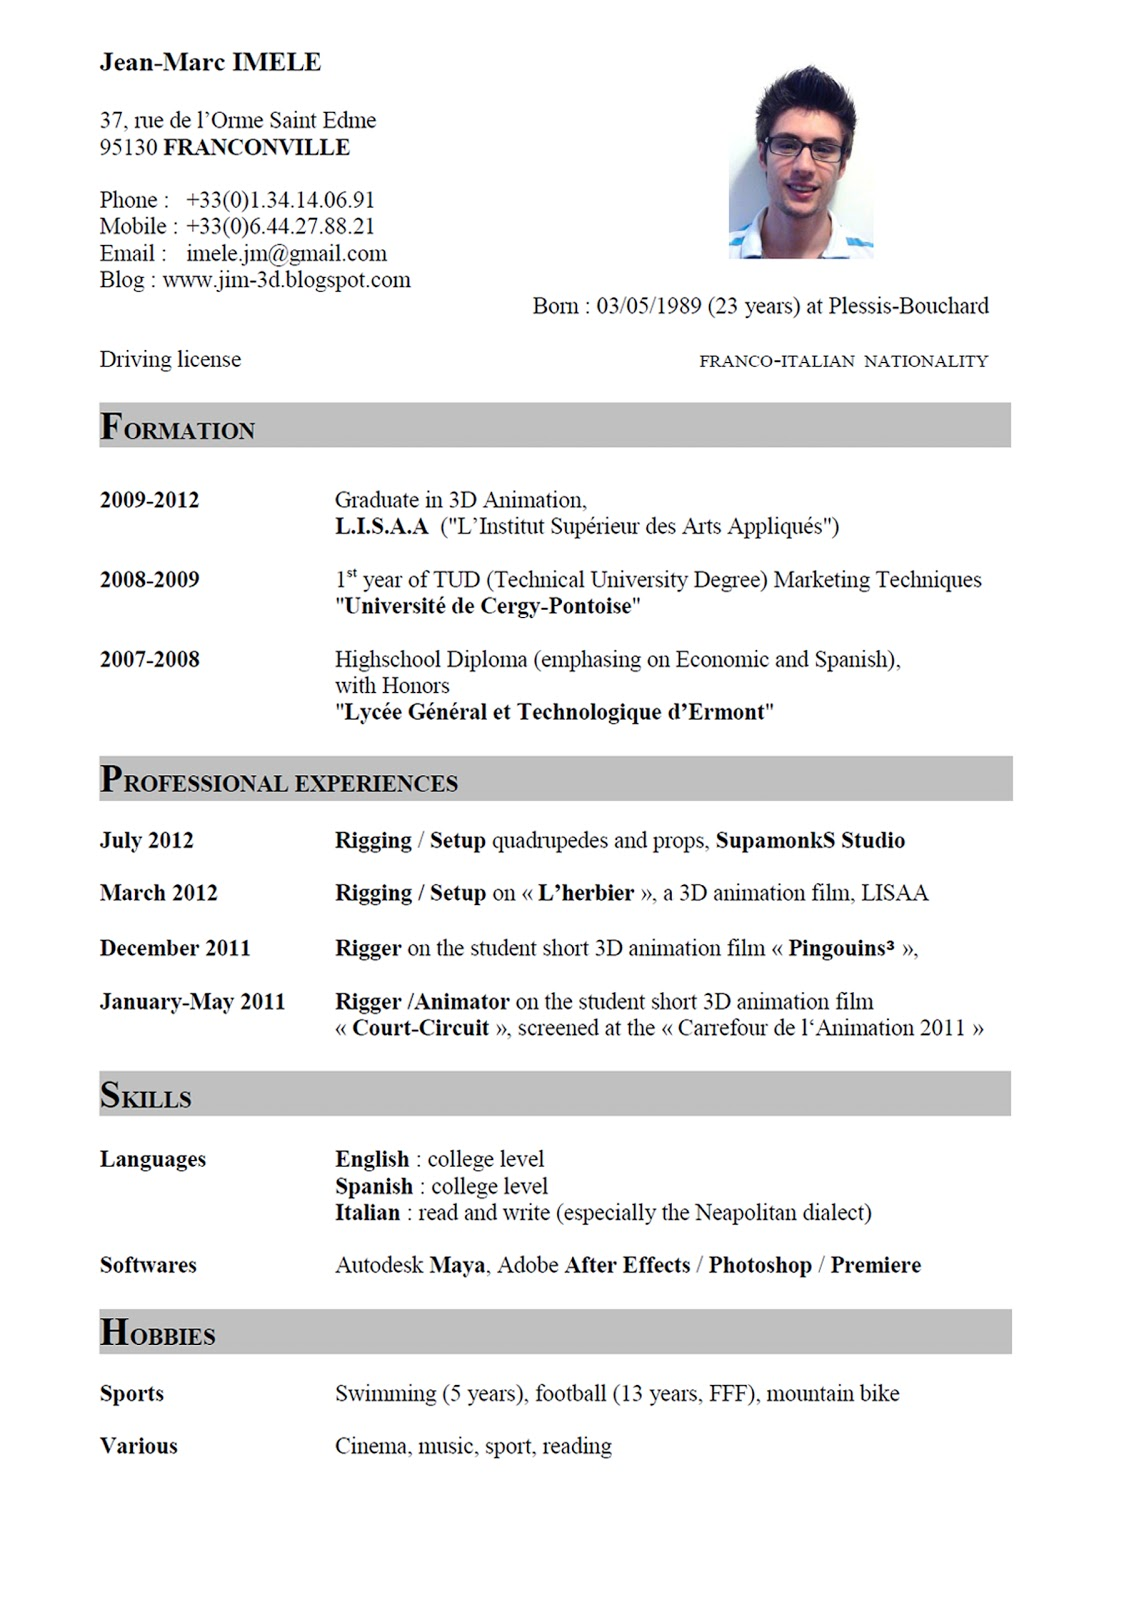 English Cv Sample Free English Cv Sample Free Resume Samples English Club Curriculum Vitaejeanmarcimeleenglishjpg